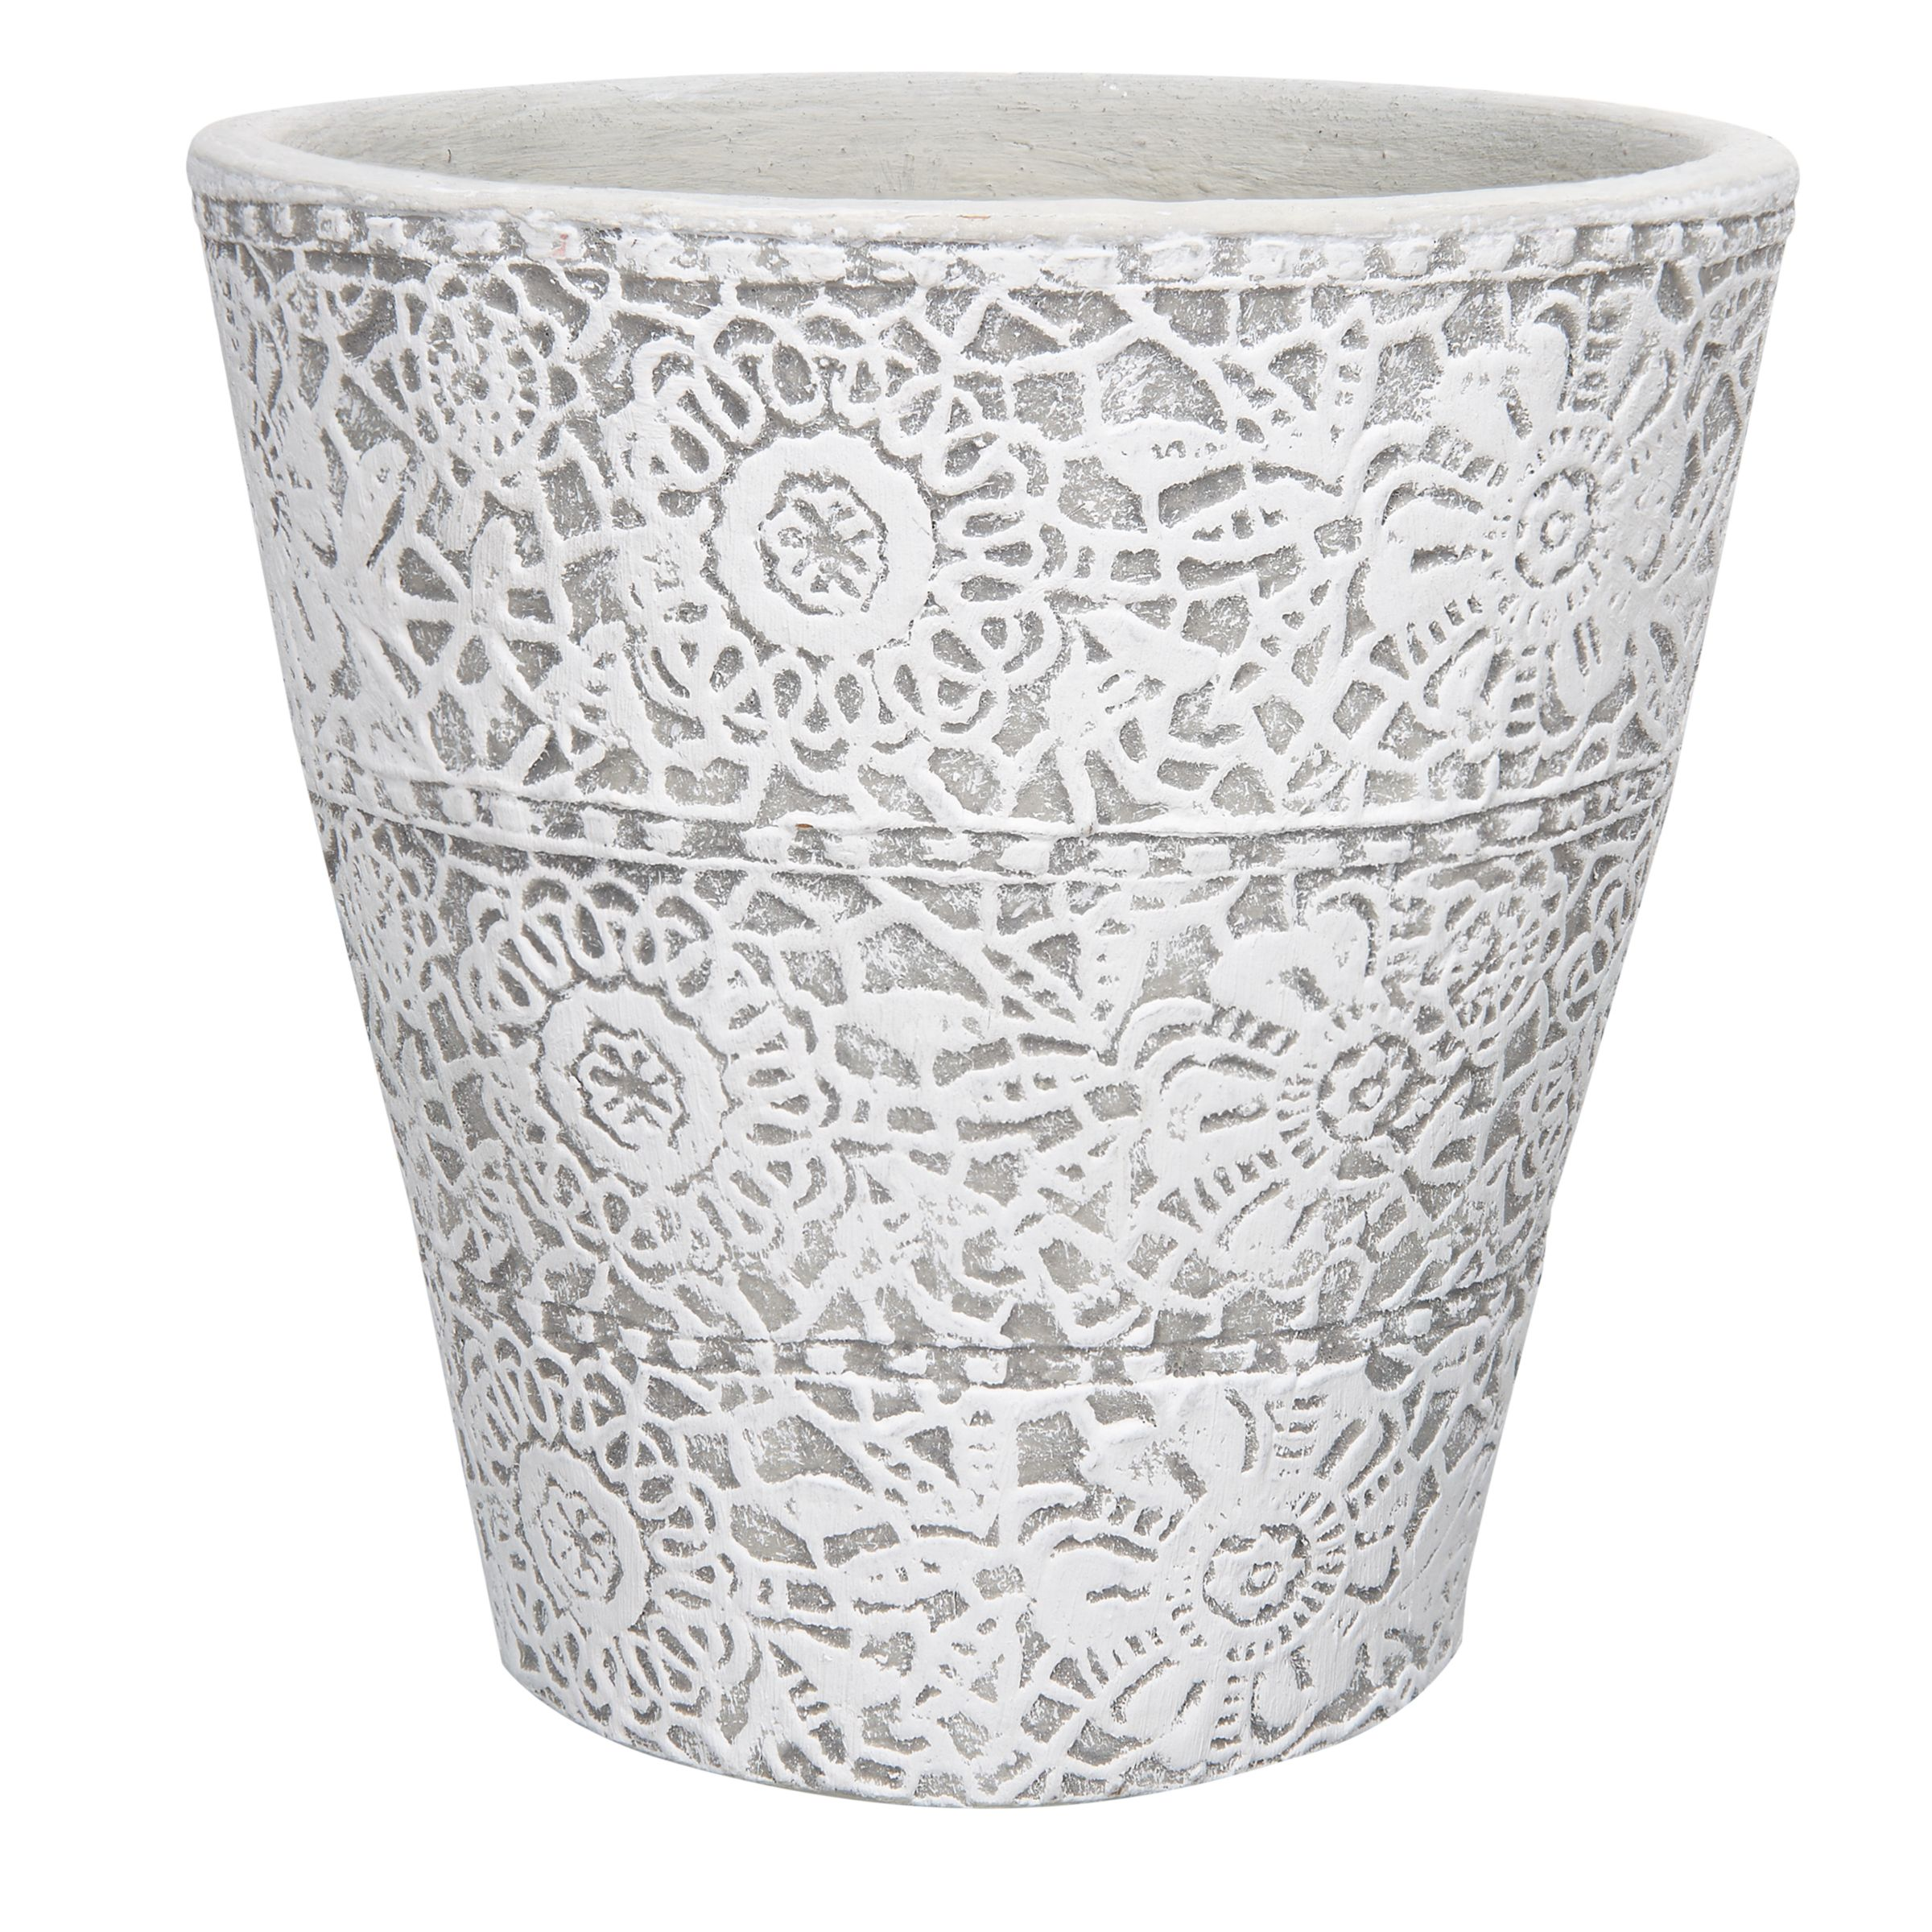 Parlane Stone Patterned Planter, White